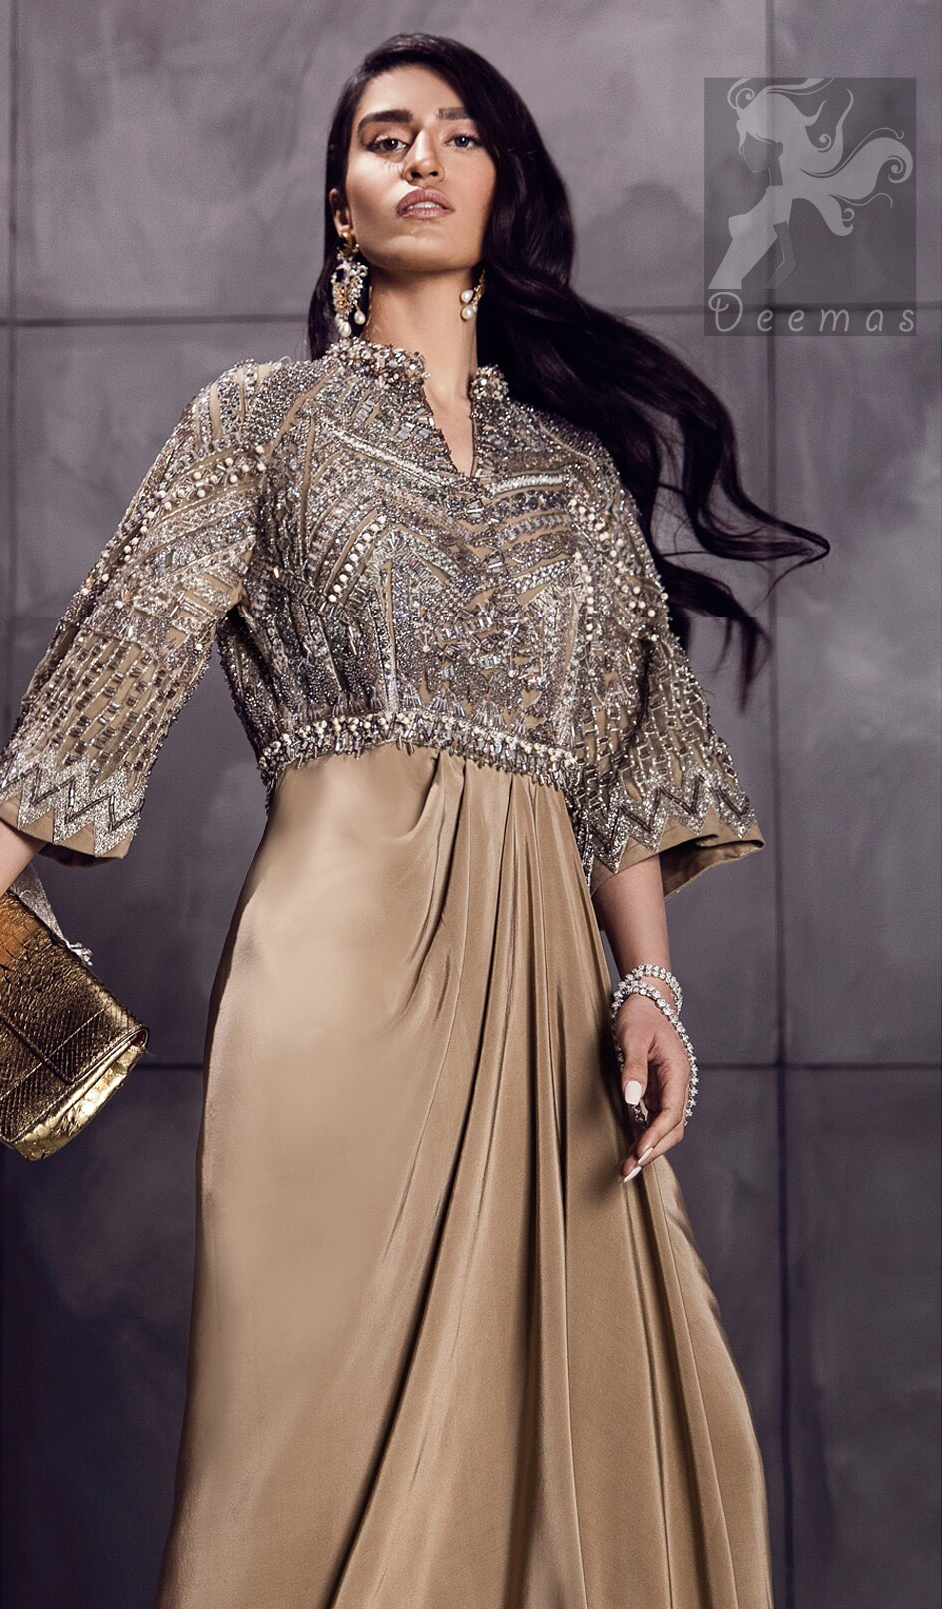 Fawn brown silky maxi has embellished bodice and sleeves. Bodice and sleeves have been embellished with dark gray embellishment and ivory pearls.